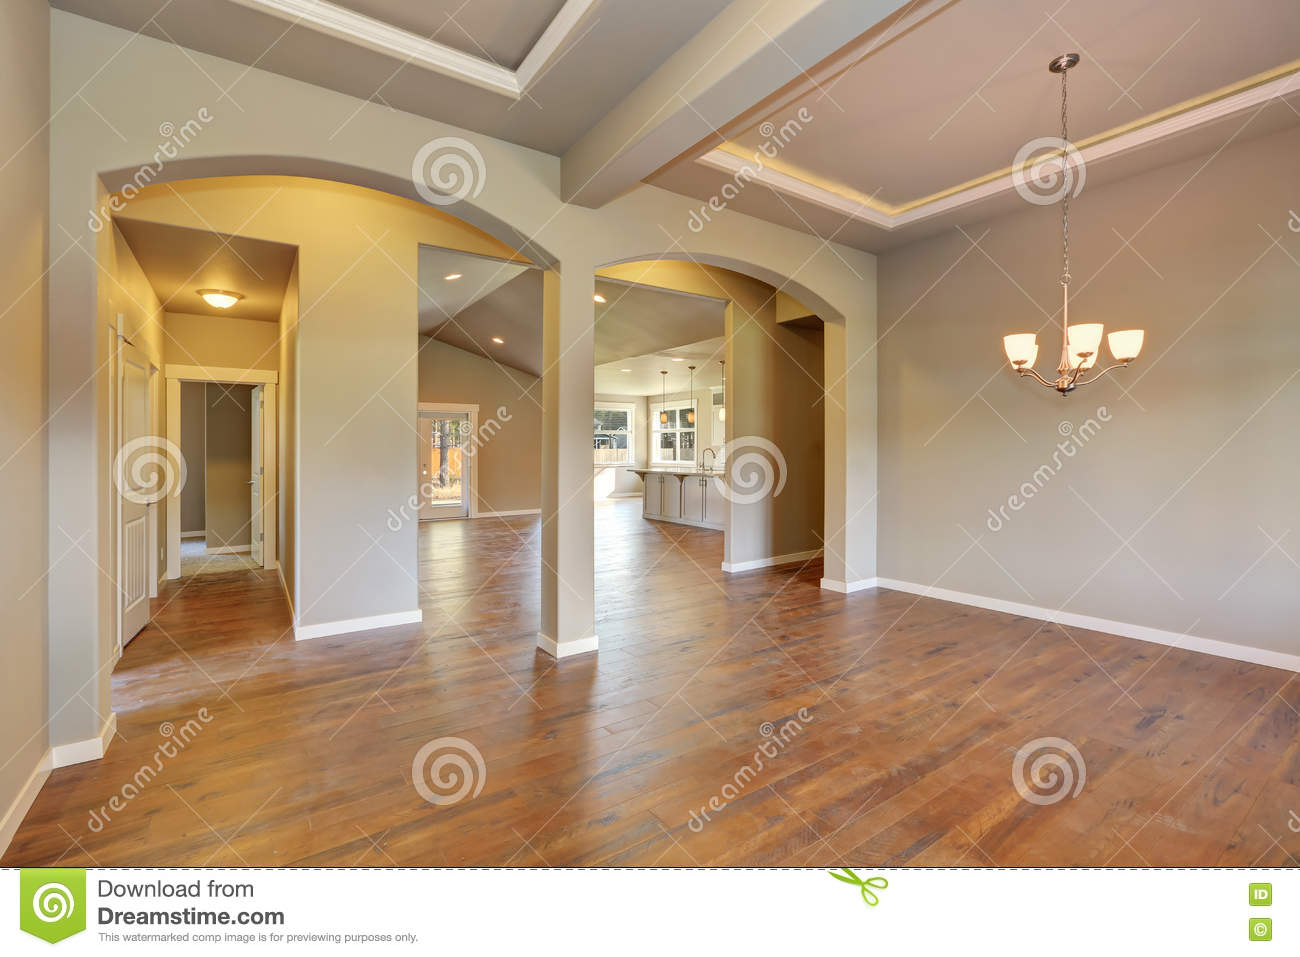 Entrance Foyer And Circulation In House : Awesome entrance hall of brand new house stock photo